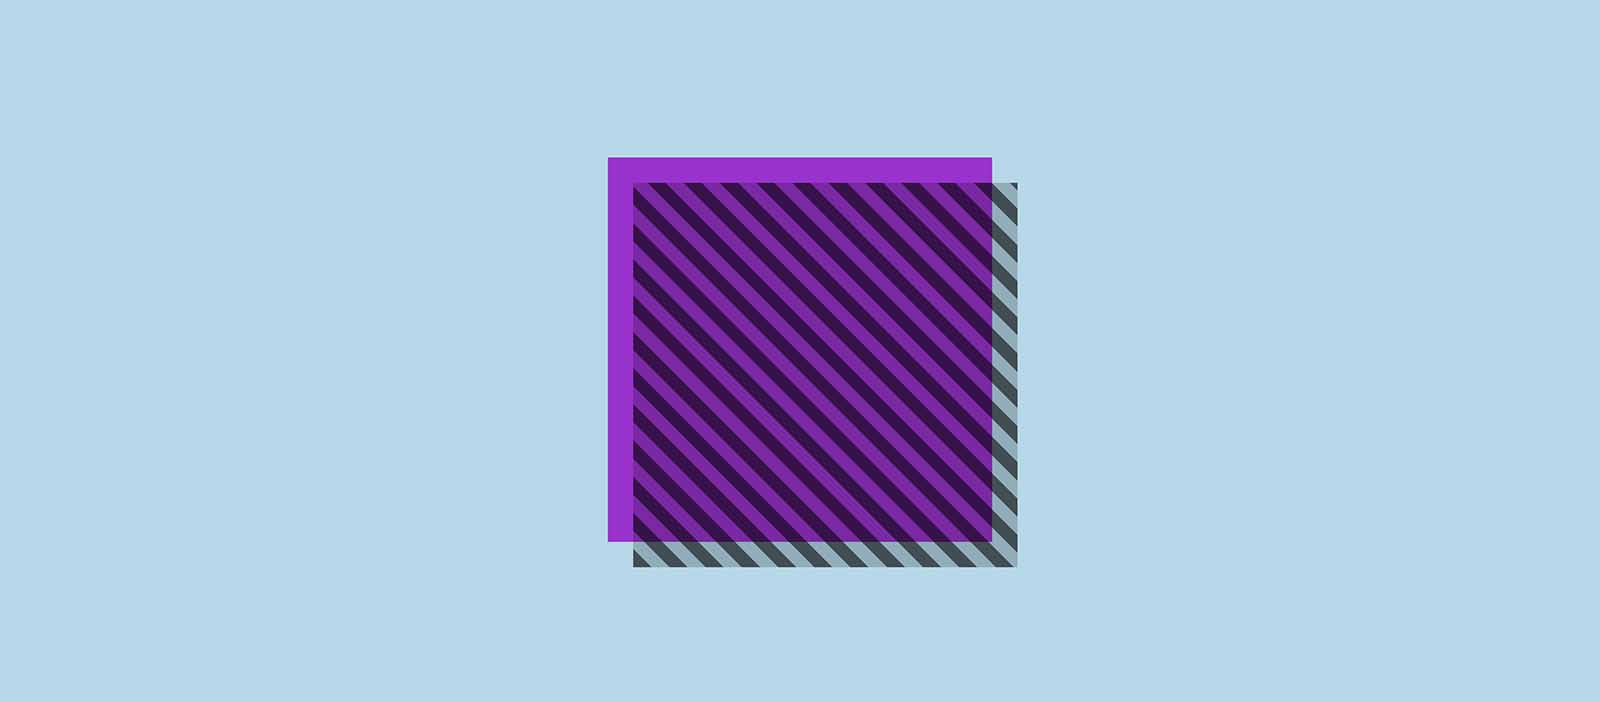 A diagonally striped square overlaid on a purple one